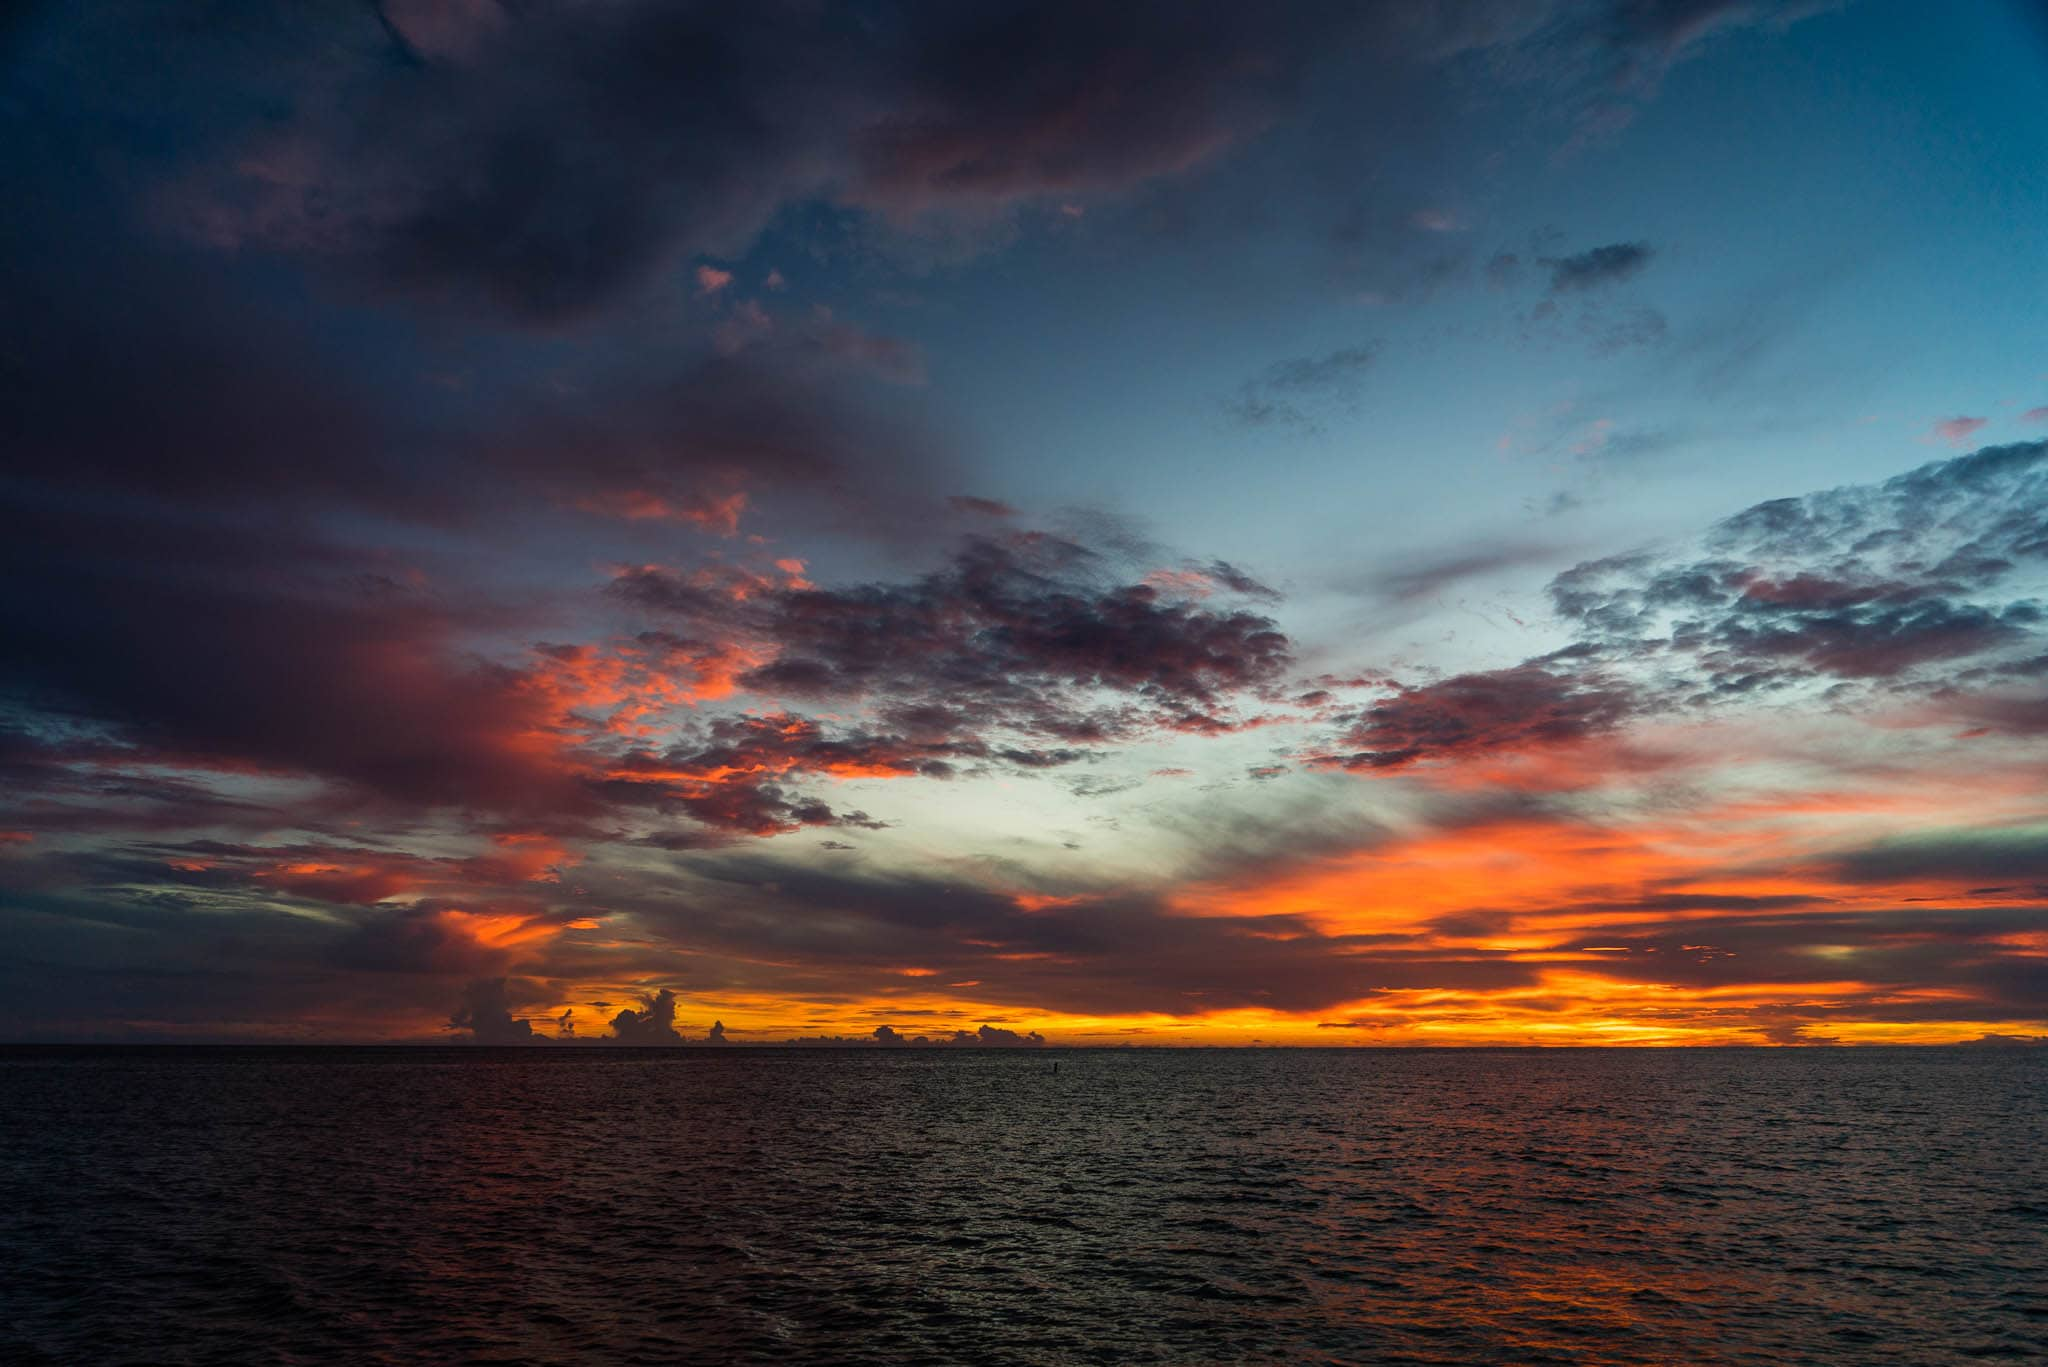 Caribbean Sunset at Sea by Patrick Bennett